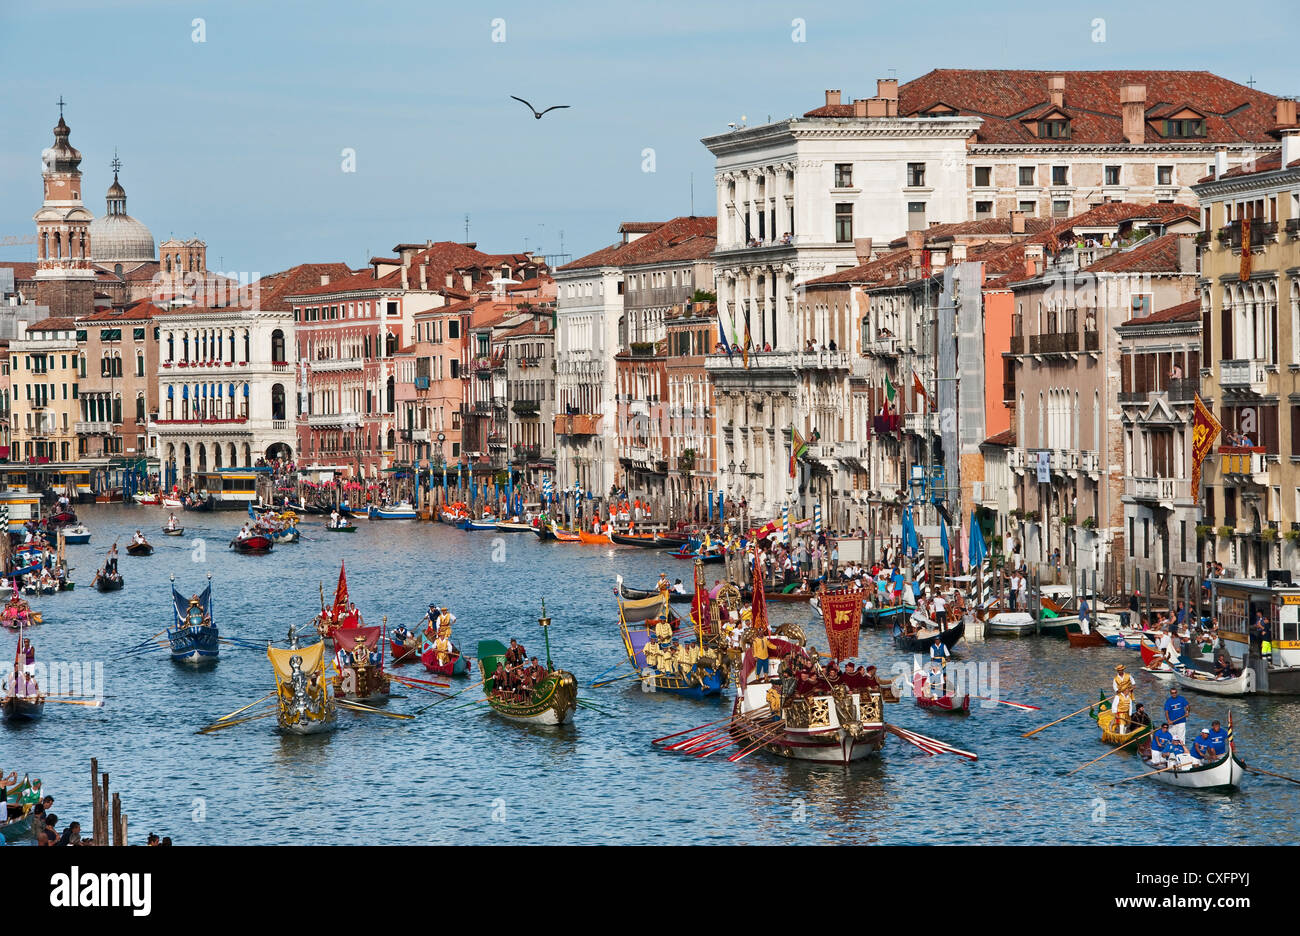 venice-italy-traditional-boats-and-costumed-rowers-on-the-grand-canal-CXFPYJ.jpg